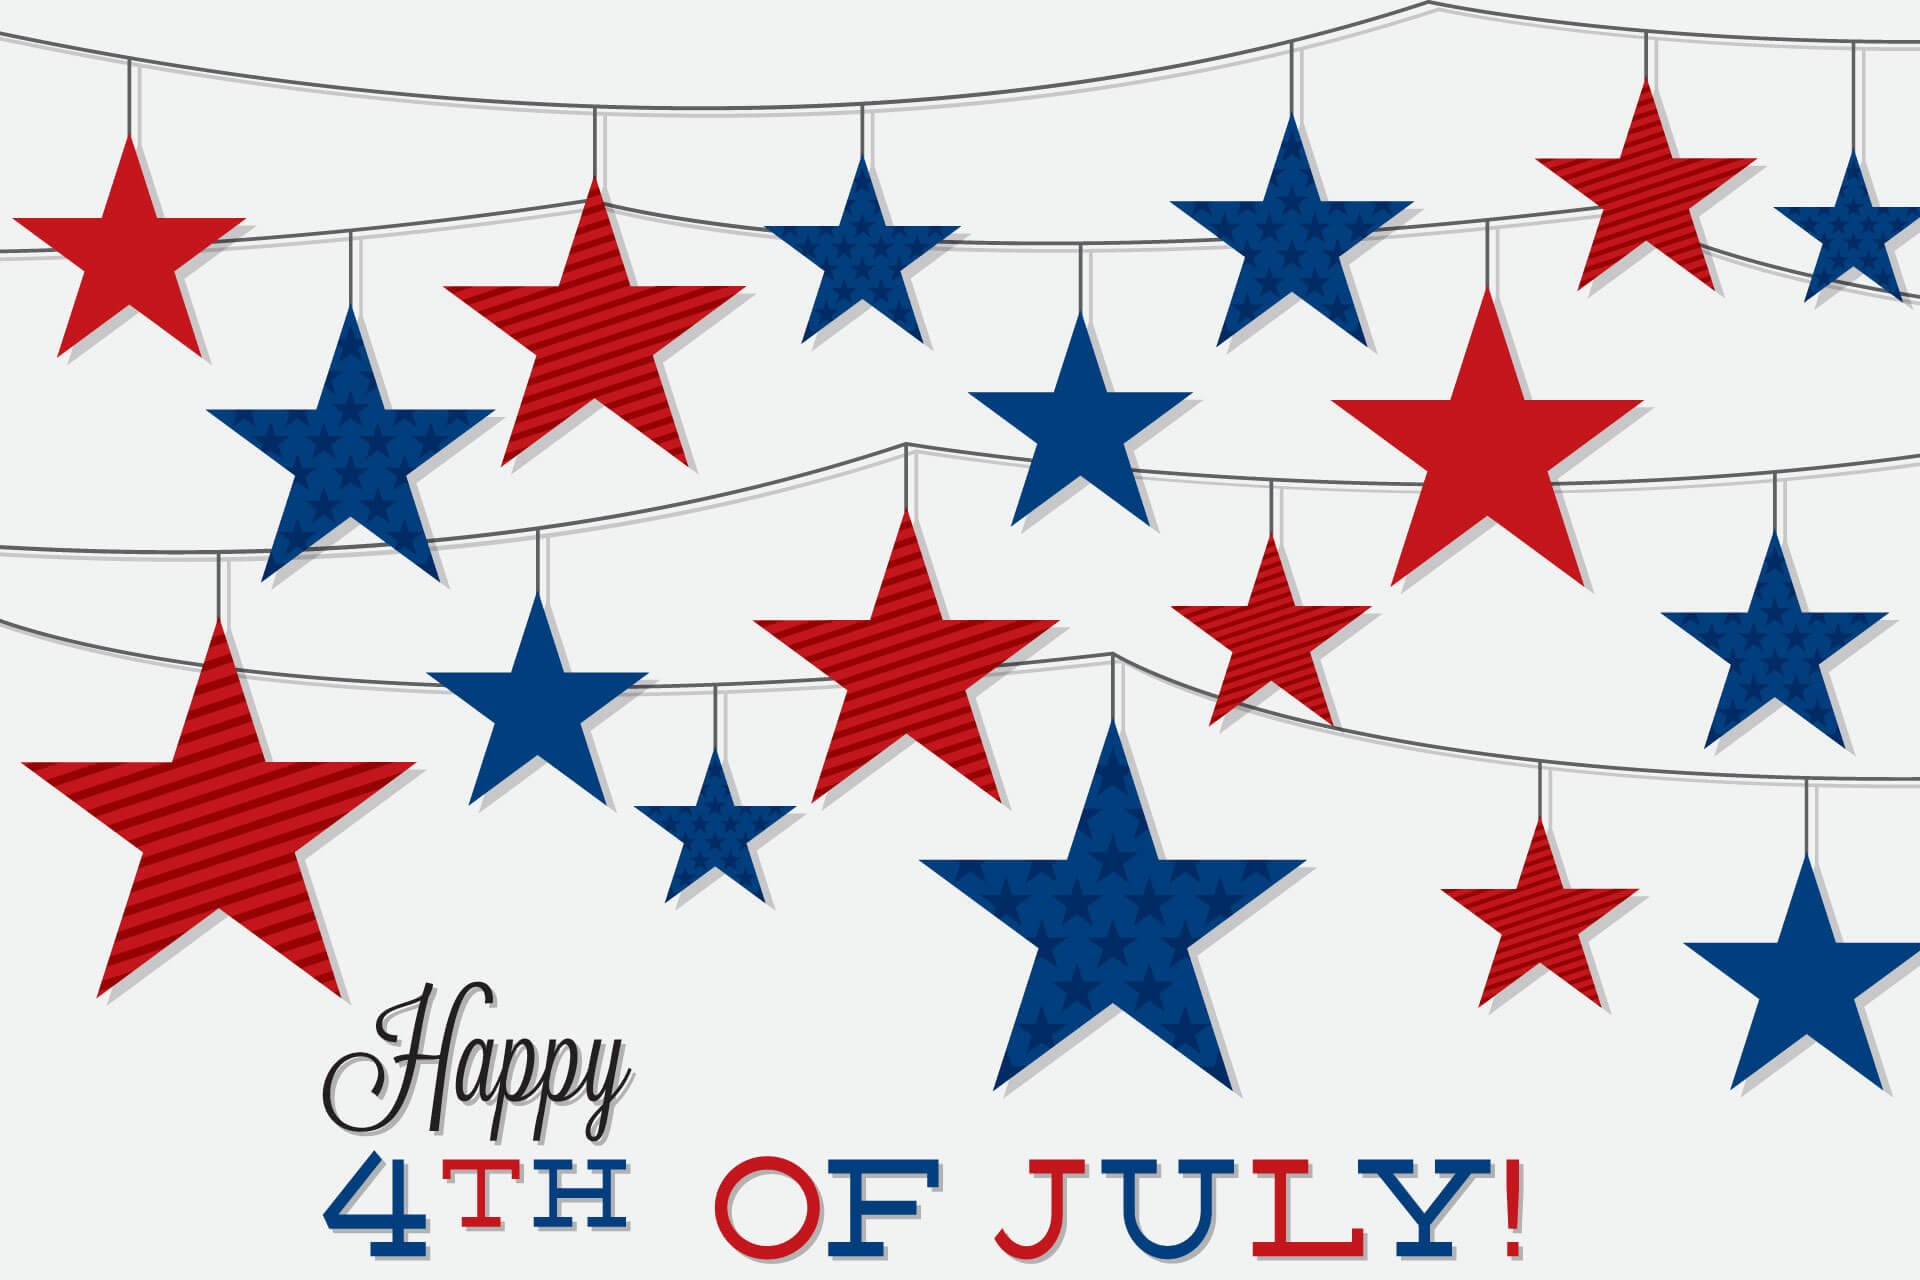 The 4th of July Skin care products sale